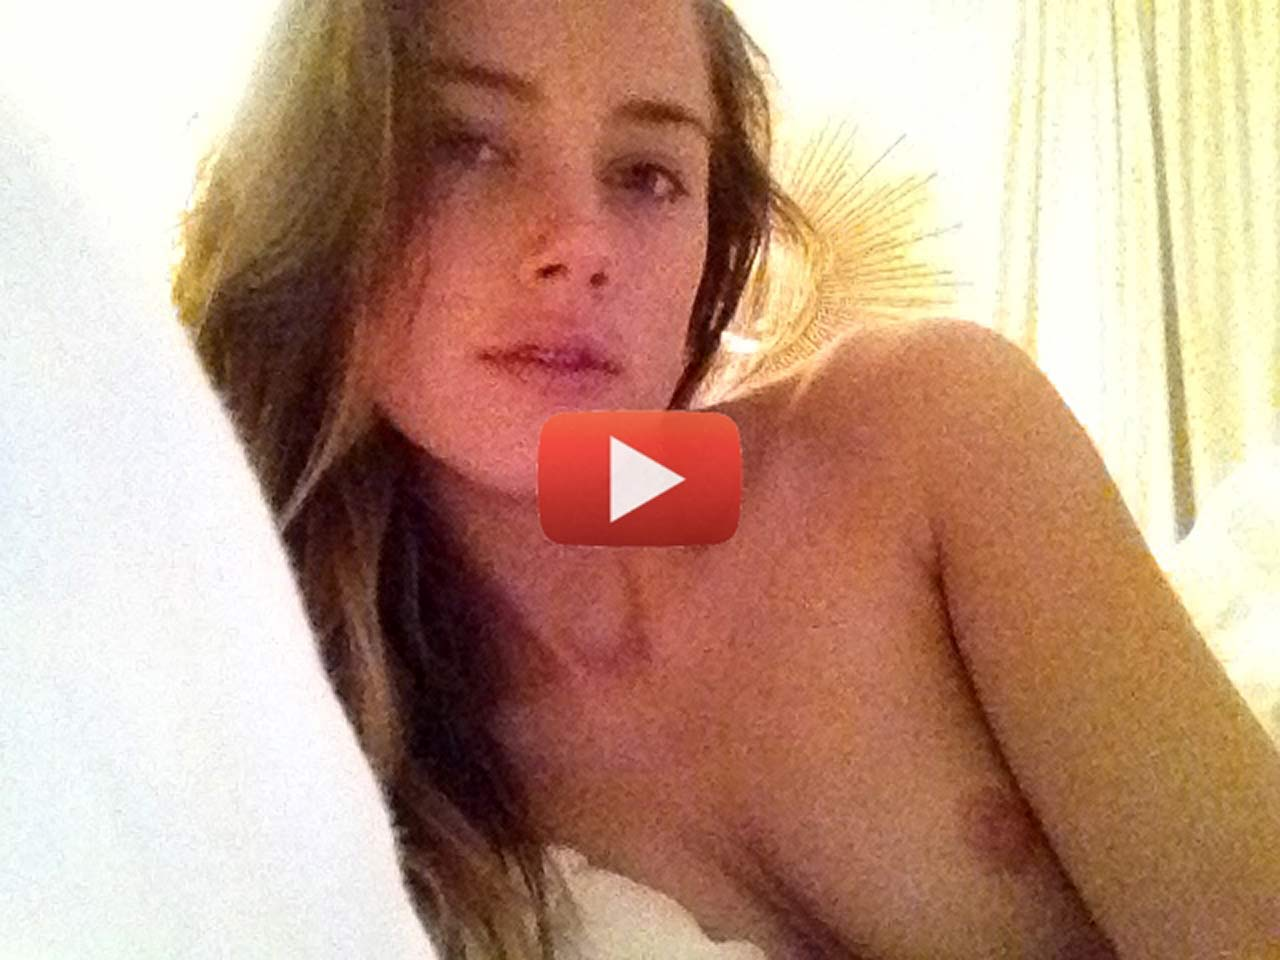 Amber Heard Nue amber heard lingerie scene from 'london fields' - scandalpost